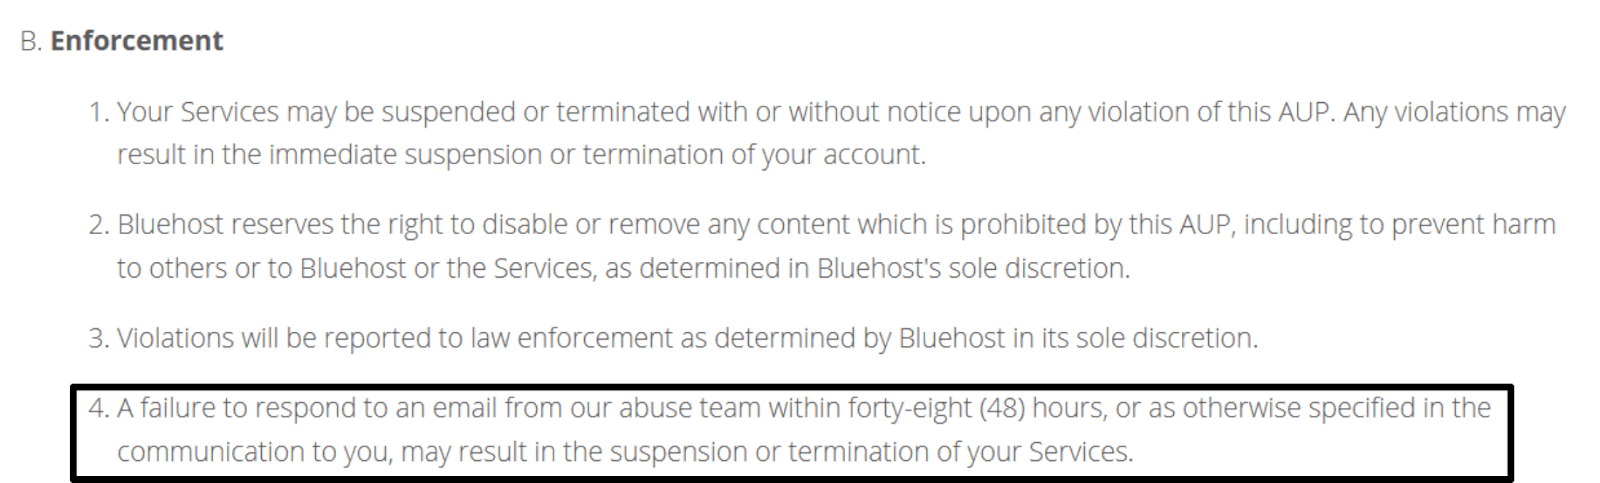 Bluehost Terms of Service - suspension or termination of account